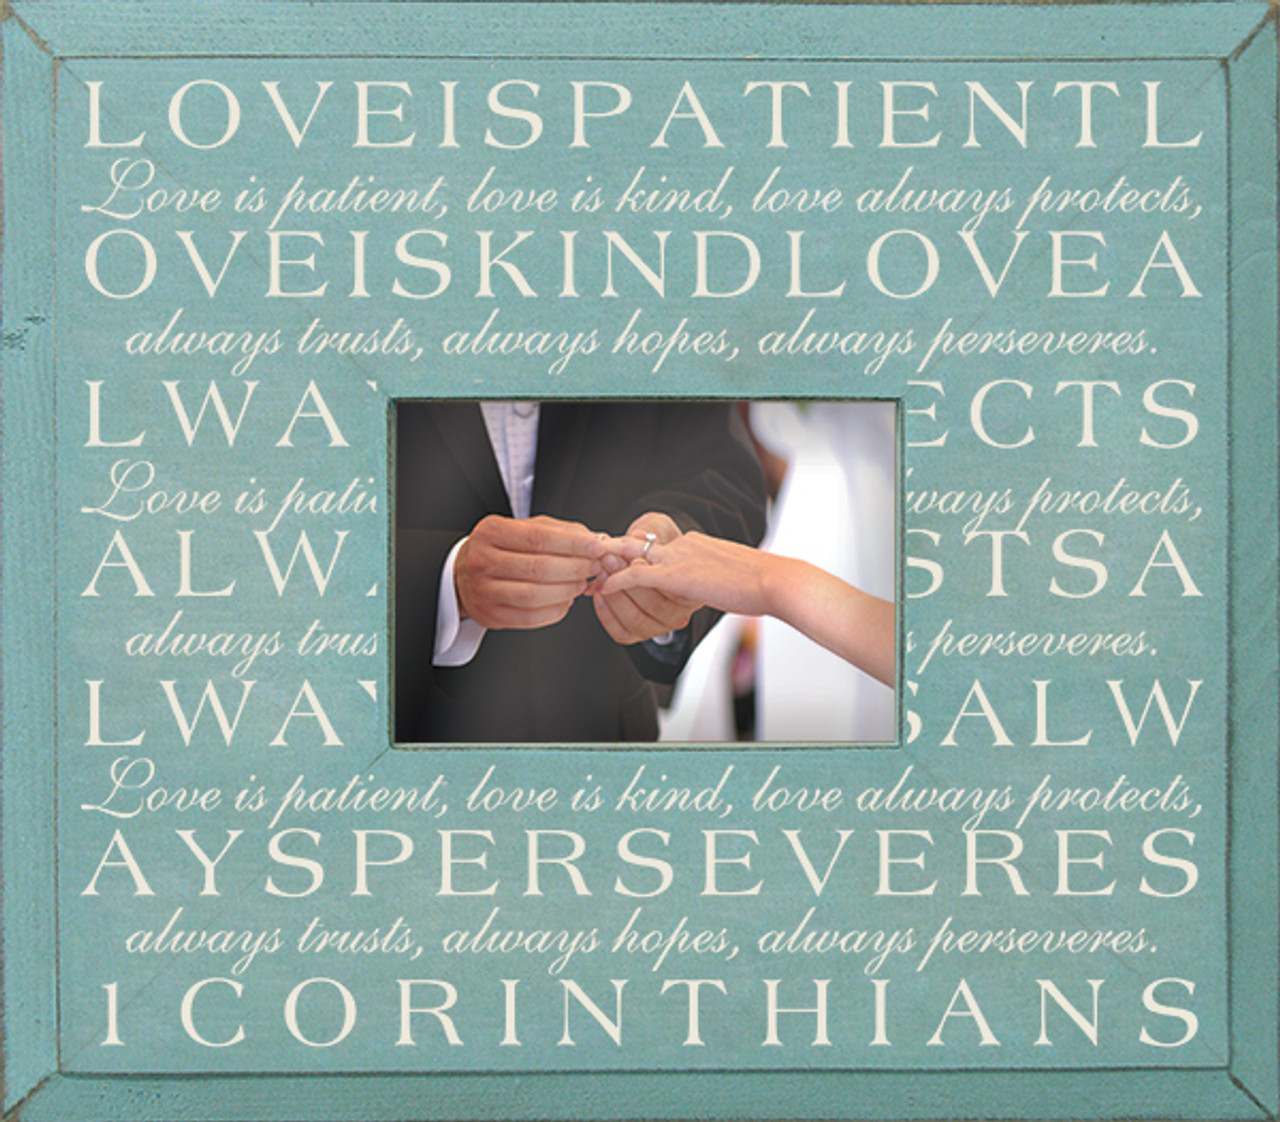 Love Is Patientfirst Corinthians Poem Sign Wood Signs